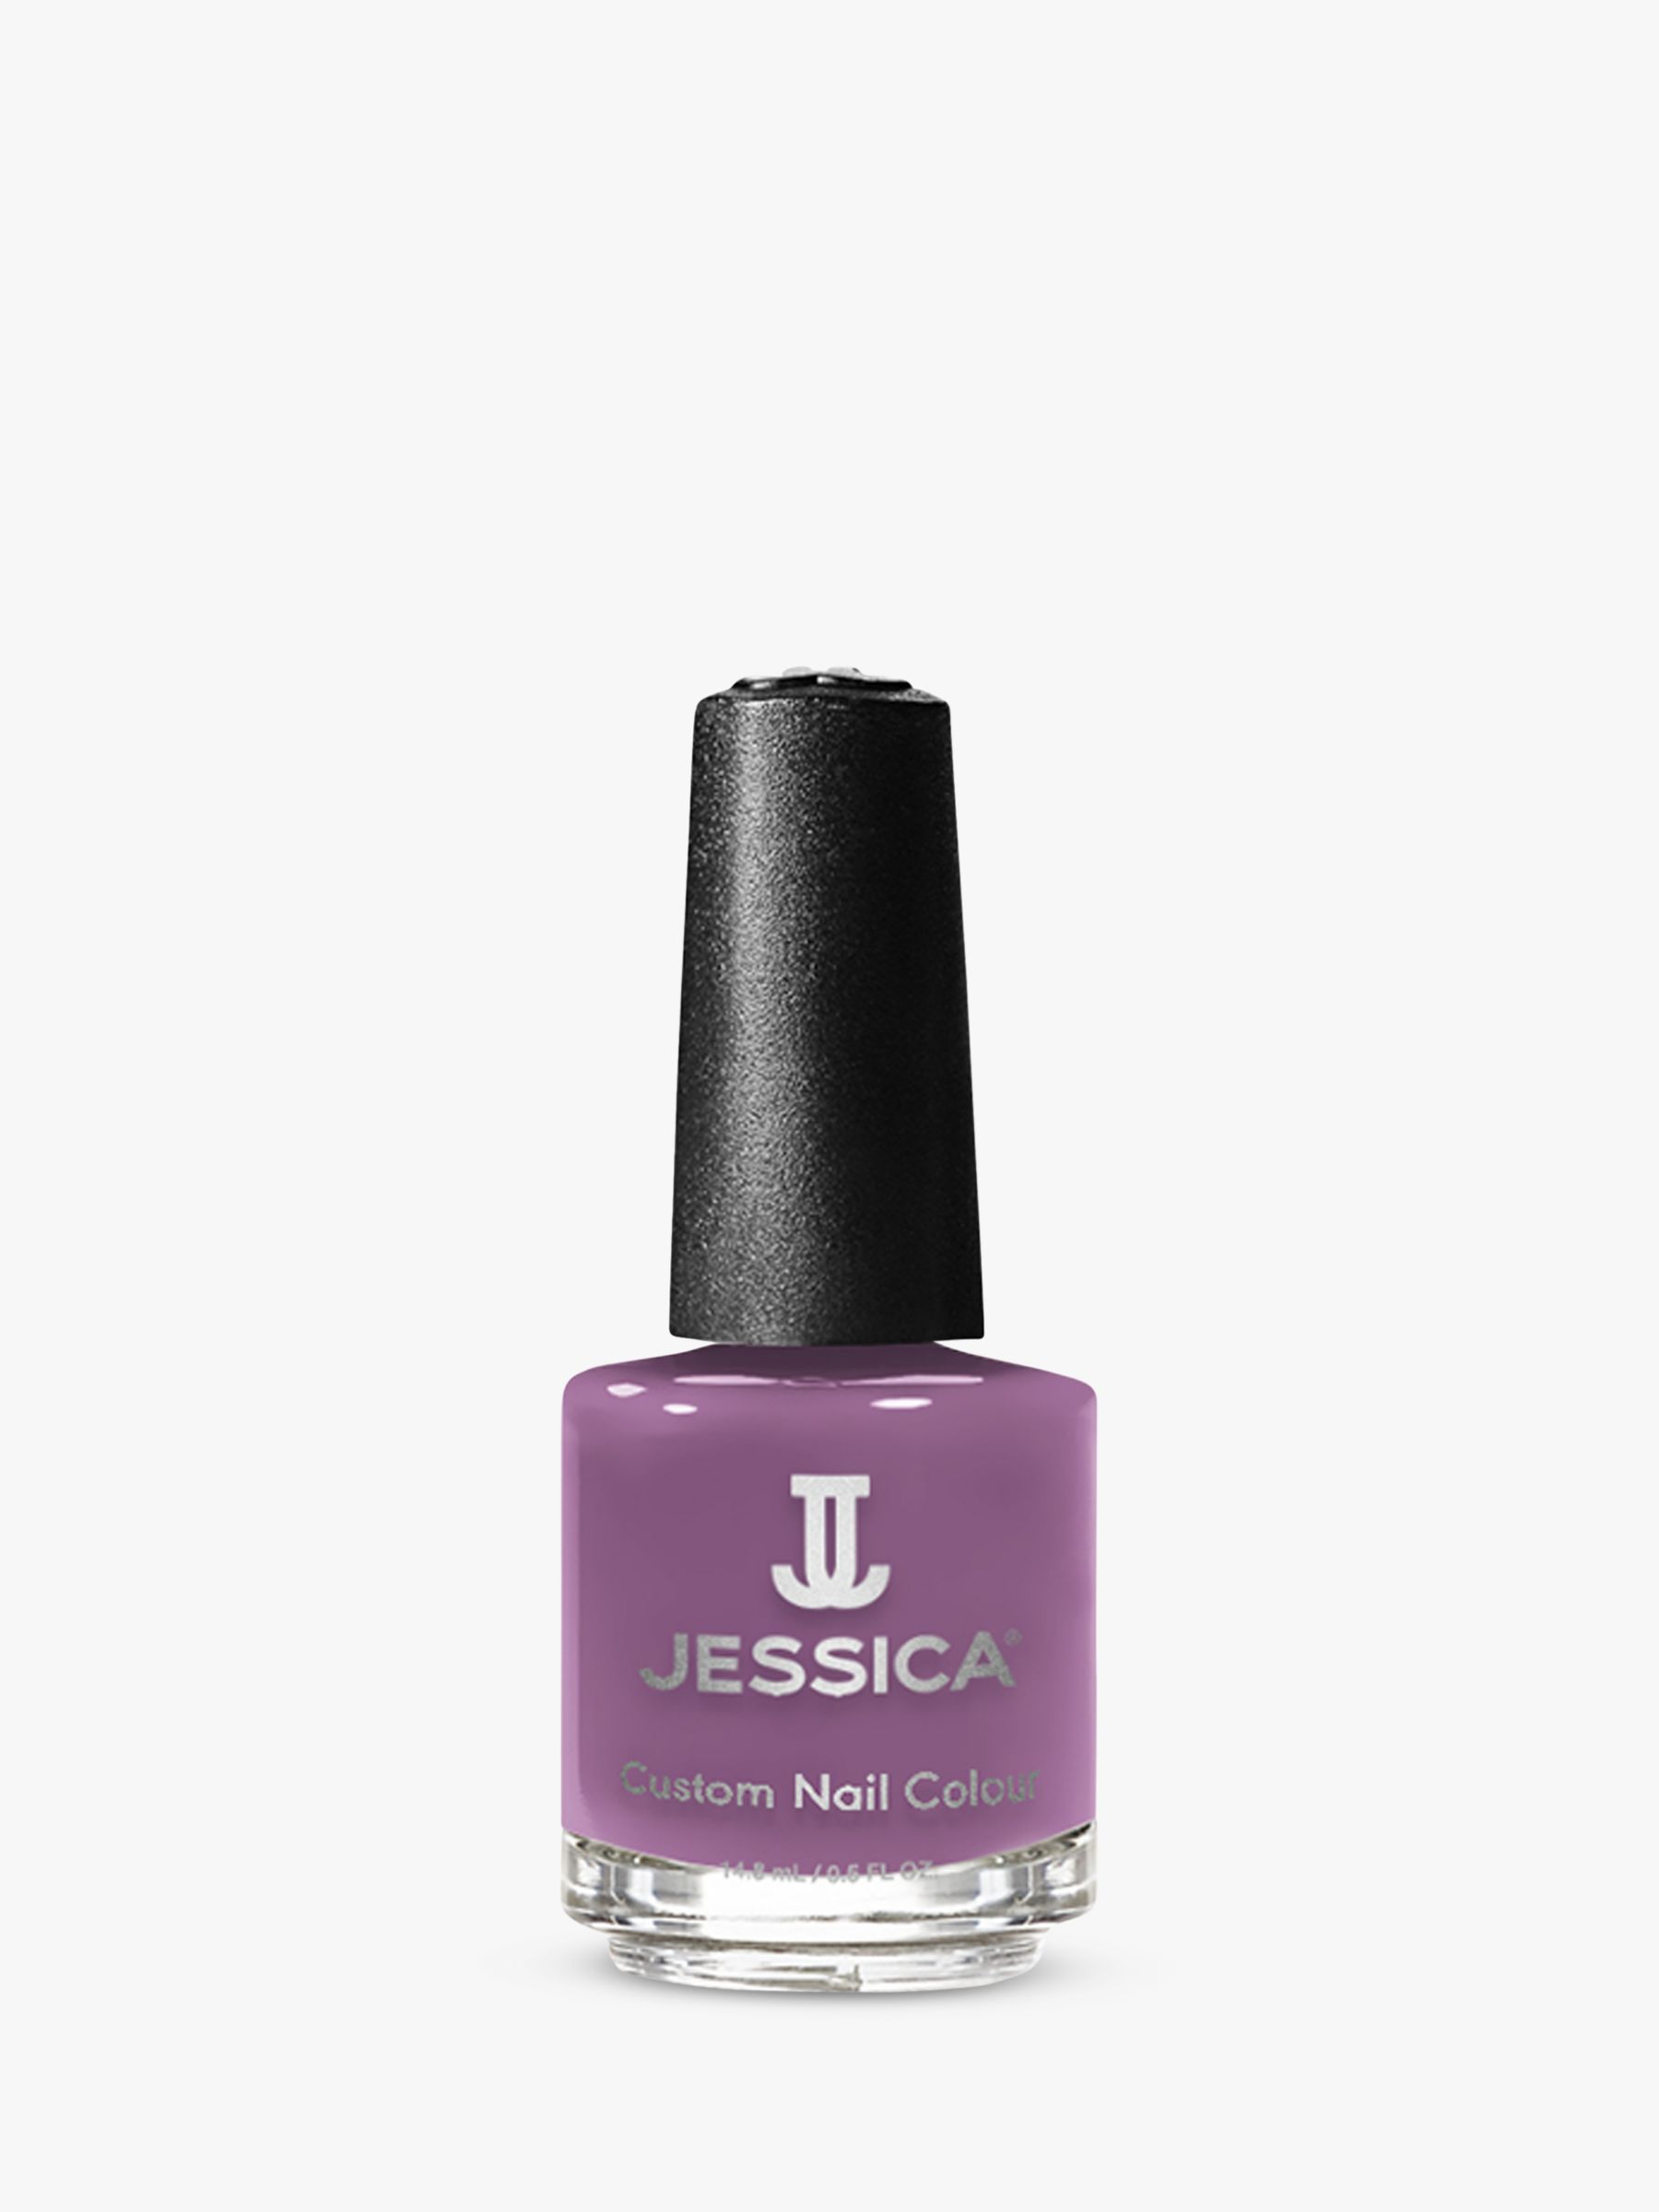 Jessica Jessica Custom Nail Colour Street Style Collection